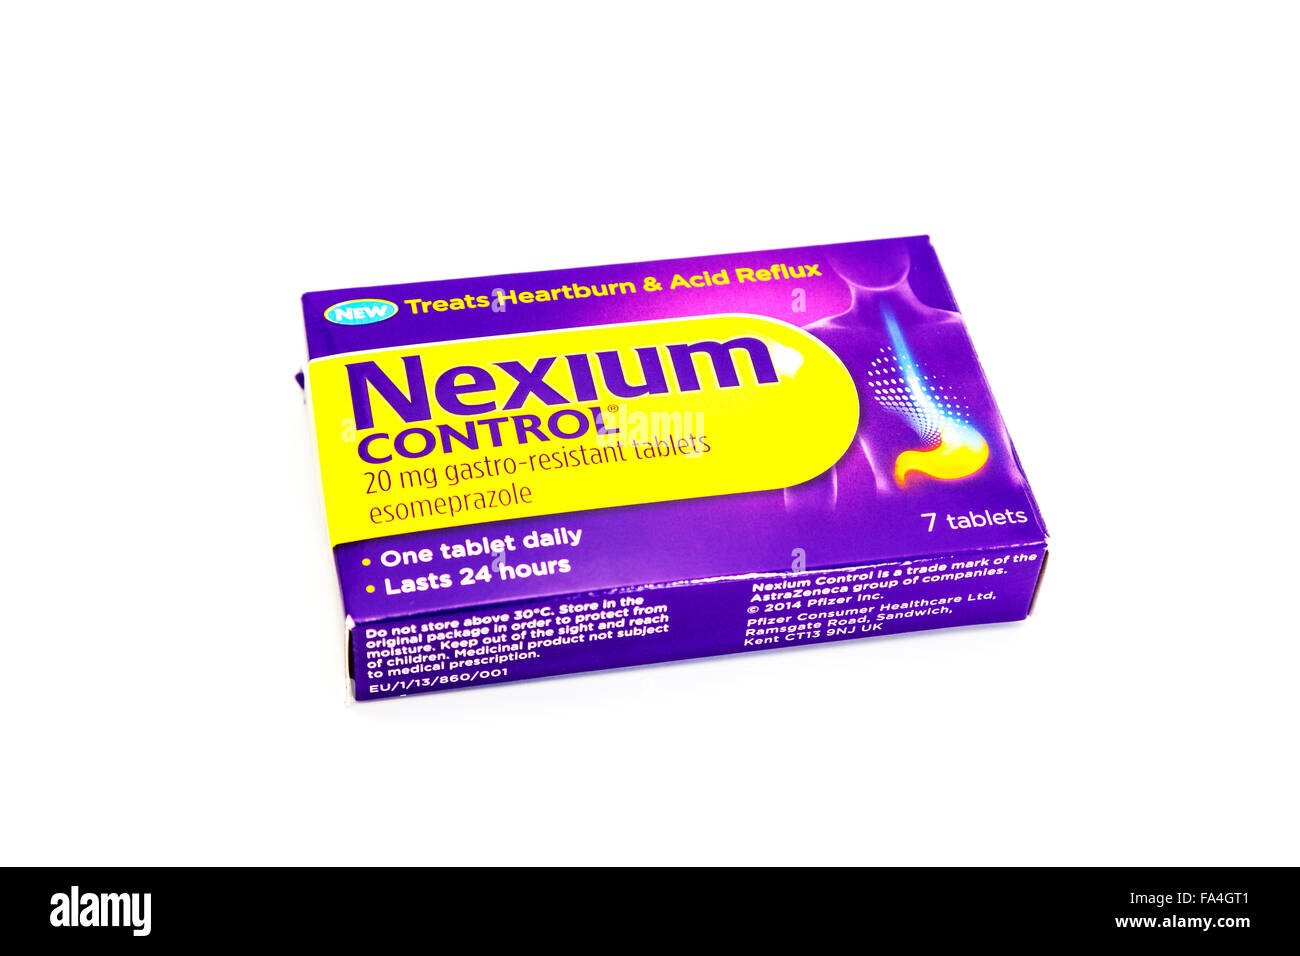 nexium control gastro resistant tablets heartburn acid reflux gerd relief  cutout cut out white background isolated